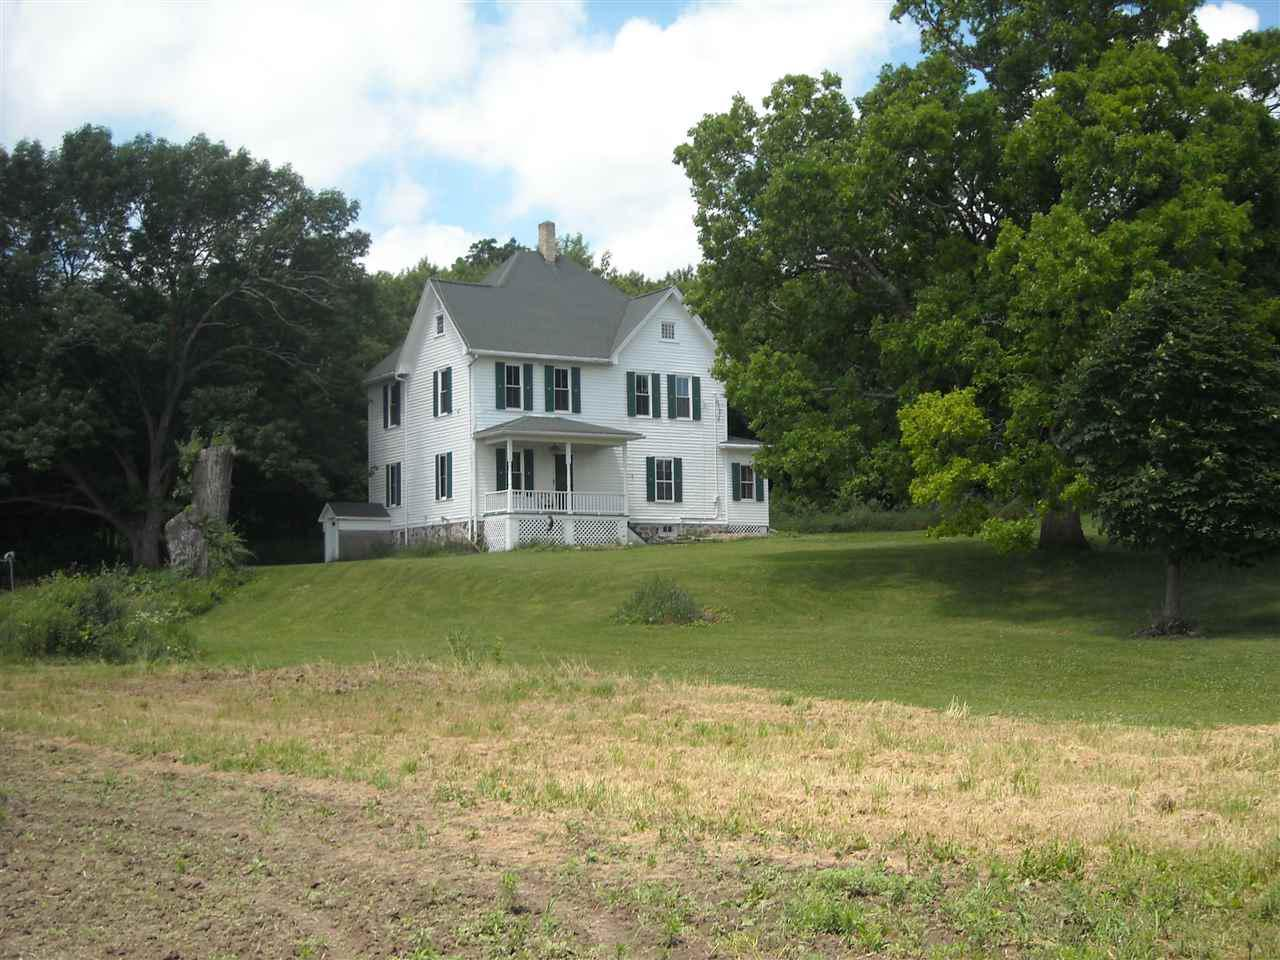 Character and Charm in this 4 Bedroom Farm Home. Located on 6.234 Acres (lot 1). An additional and adjacent 11.783 Acres (lot 2) is available. Lot 2 is NOT a residential buildable lot. Full Barn (28x59) and Utility Shed / Garage (36x20). Excellent view to the southeast. All New Windows Recently Installed. Property is F/K/A 4219 Smith Drive